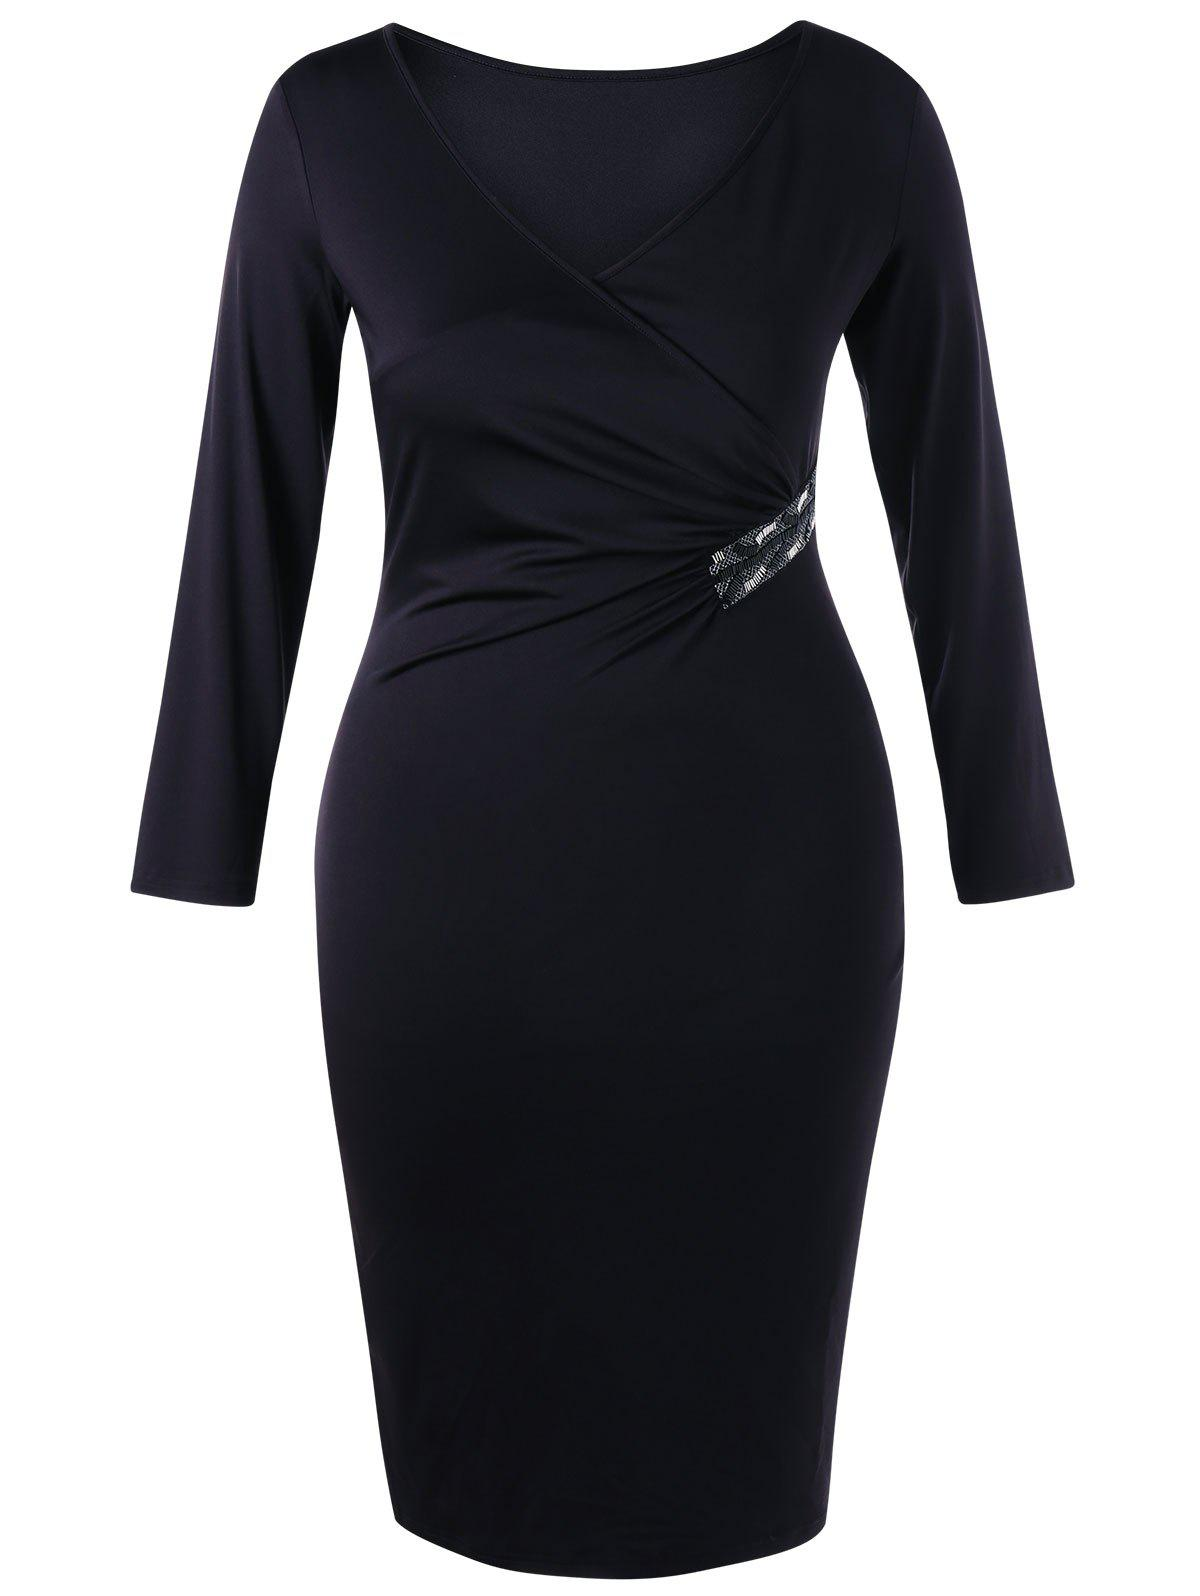 Plus Size V Neck Sheath Surplice DressWOMEN<br><br>Size: 4XL; Color: BLACK; Style: Brief; Material: Polyester,Spandex; Silhouette: Bodycon; Dresses Length: Knee-Length; Neckline: V-Neck; Sleeve Length: Long Sleeves; Pattern Type: Solid; With Belt: No; Season: Fall,Spring; Weight: 0.3750kg; Package Contents: 1 x Dress;